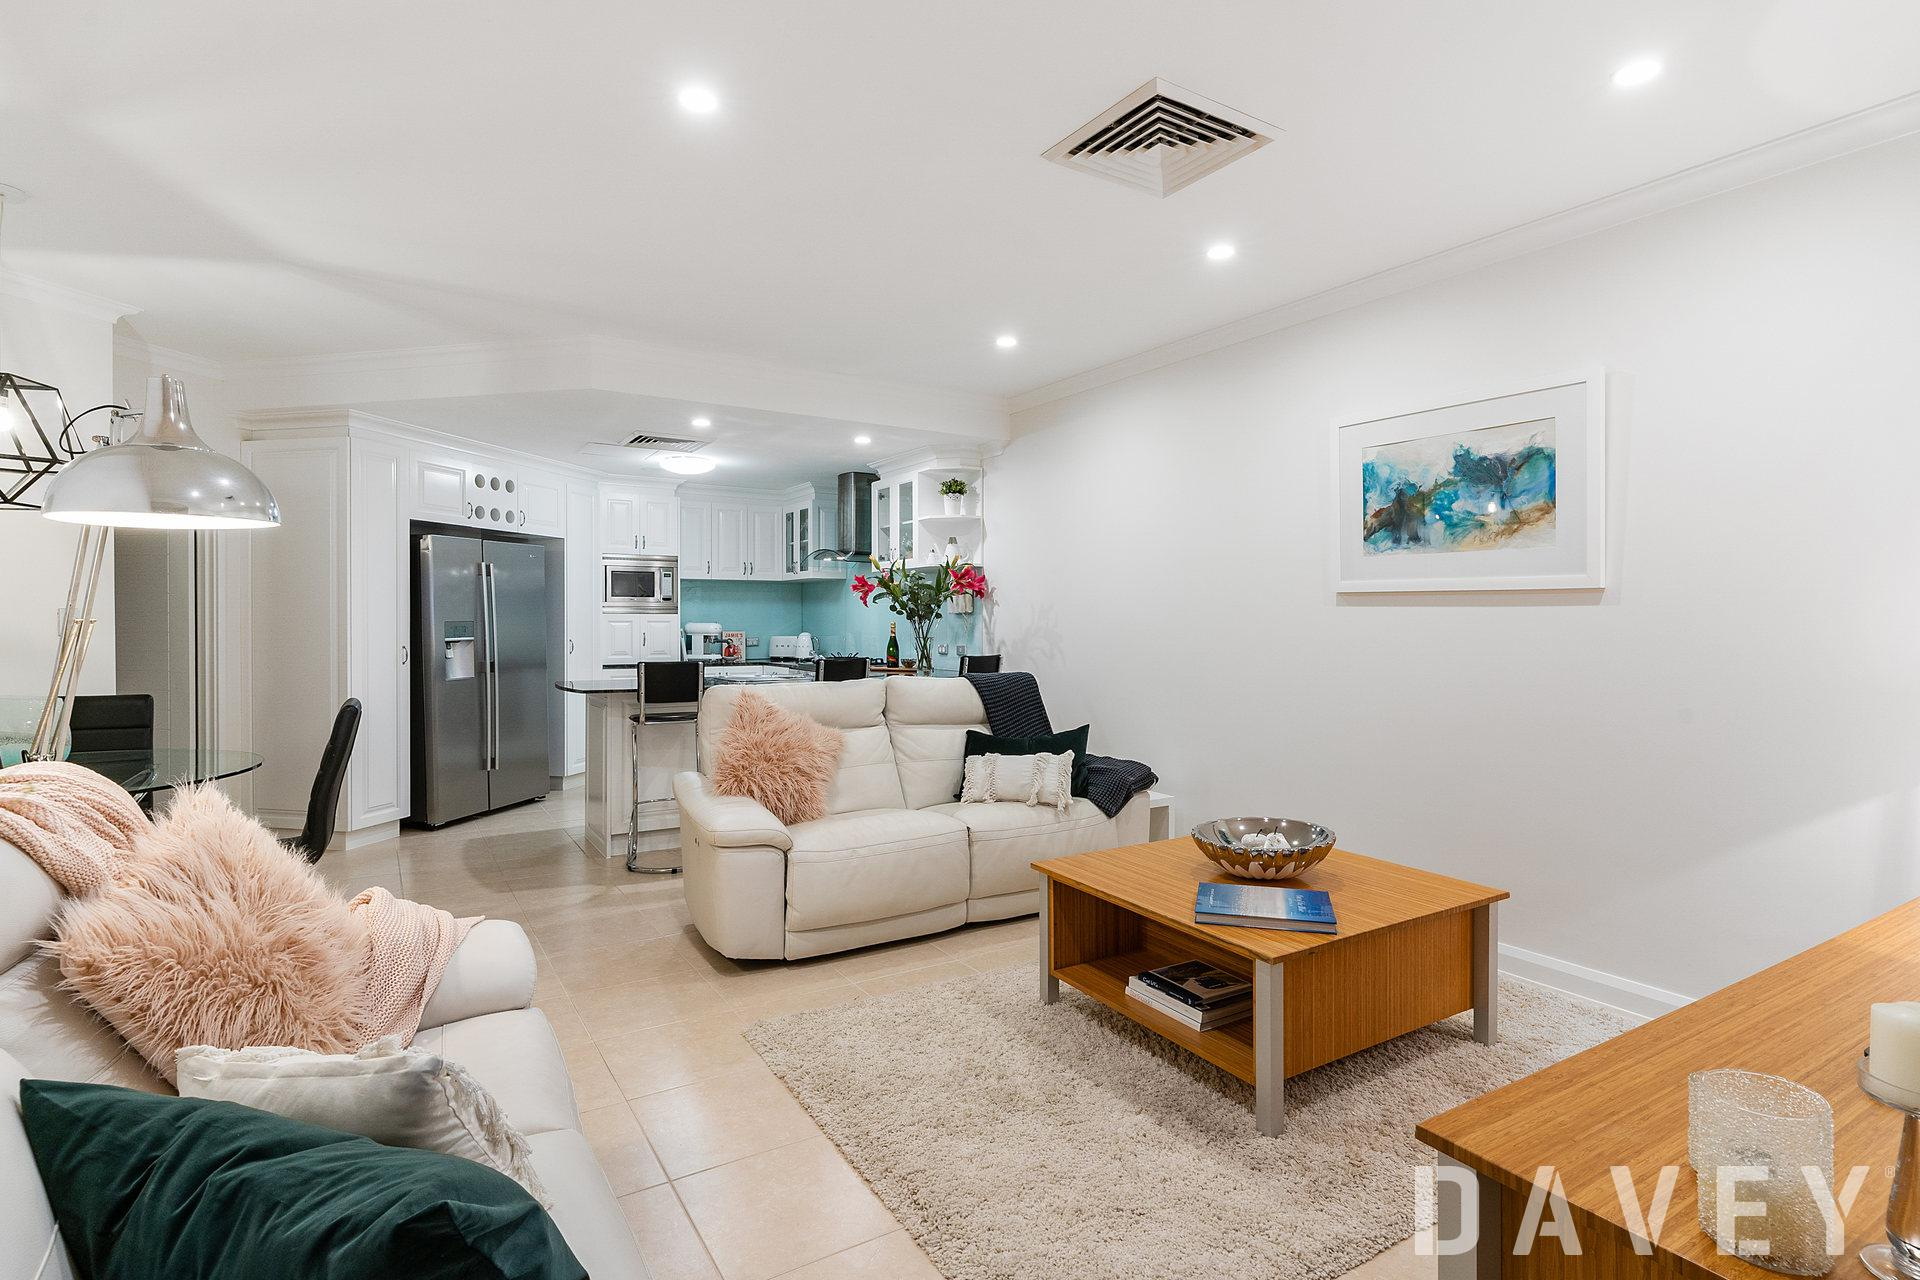 LUXURY LIVING IN THE HEART OF JOONDALUP - OPEN THIS SUNDAY